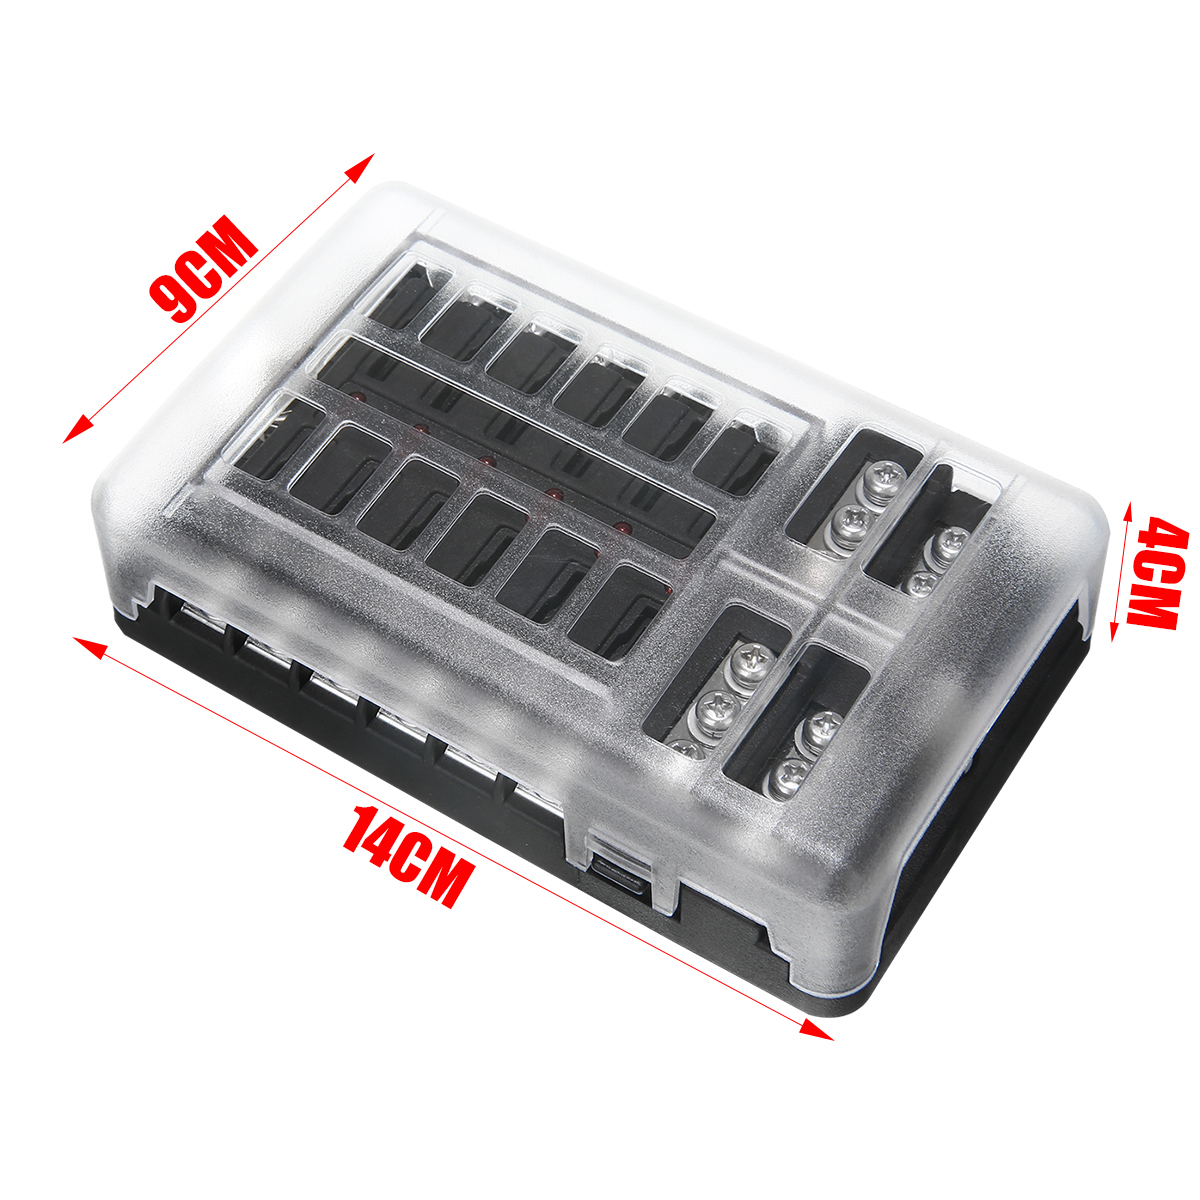 DC 12-32V 100A 12 Way Fuse Box Car Truck Boat Bus Power Distribution Block Double Busbars 12-way Fuse Box with screws&labels